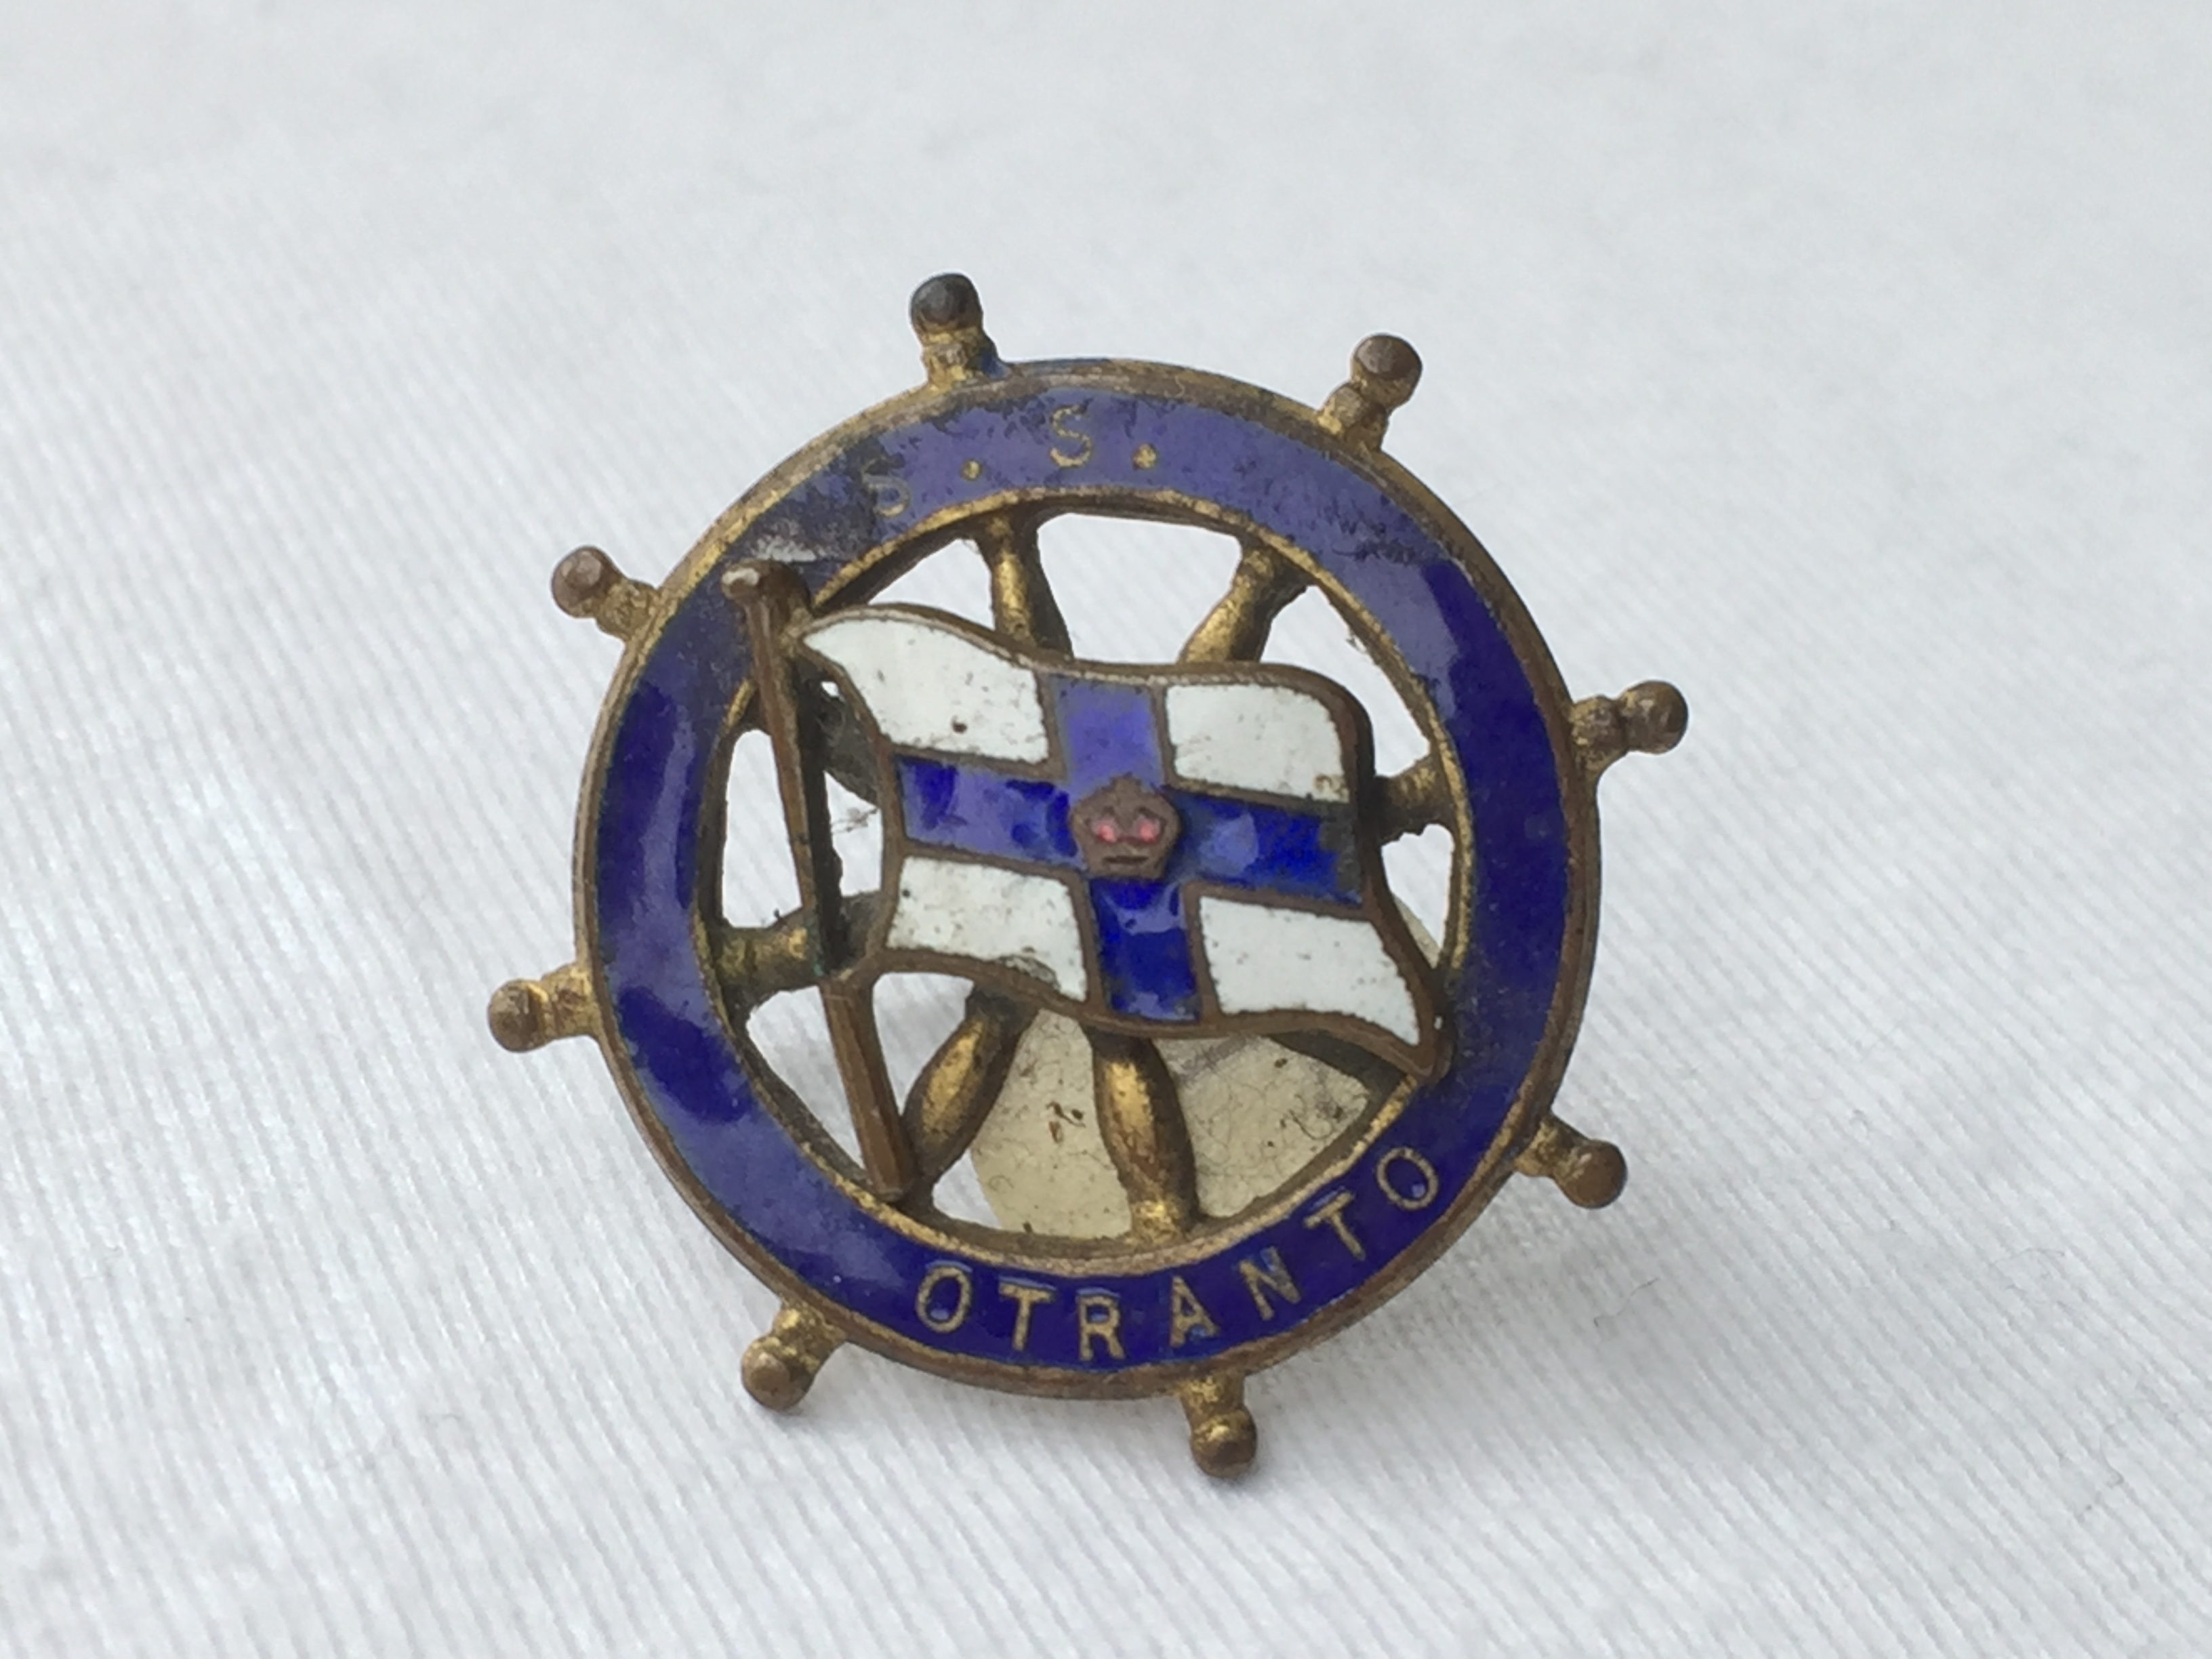 VERY RARE TO FIND LAPEL PIN BADGE FROM THE ORIENT LINE VESSEL THE SS OTRANTO 1926-1956